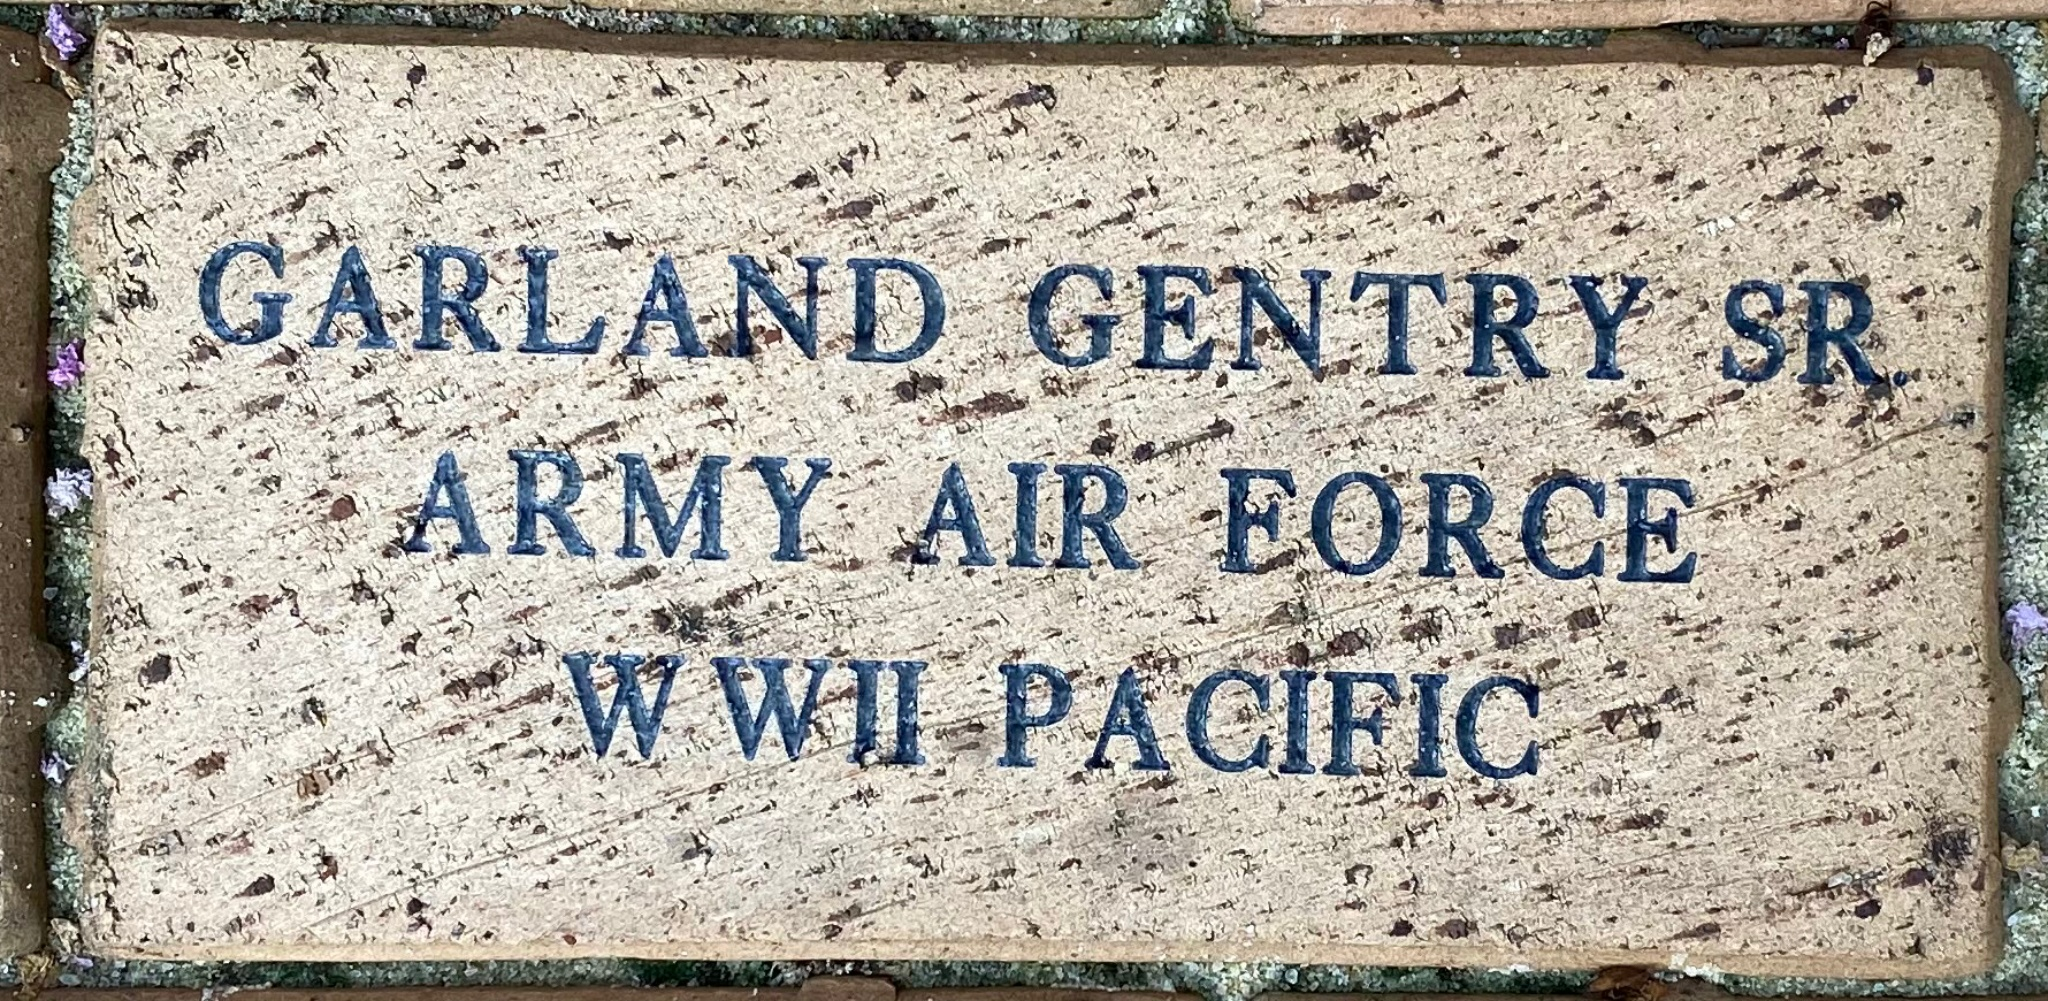 GARLAND GENTRY SR ARMY AIR FORCE WWII PACIFIC